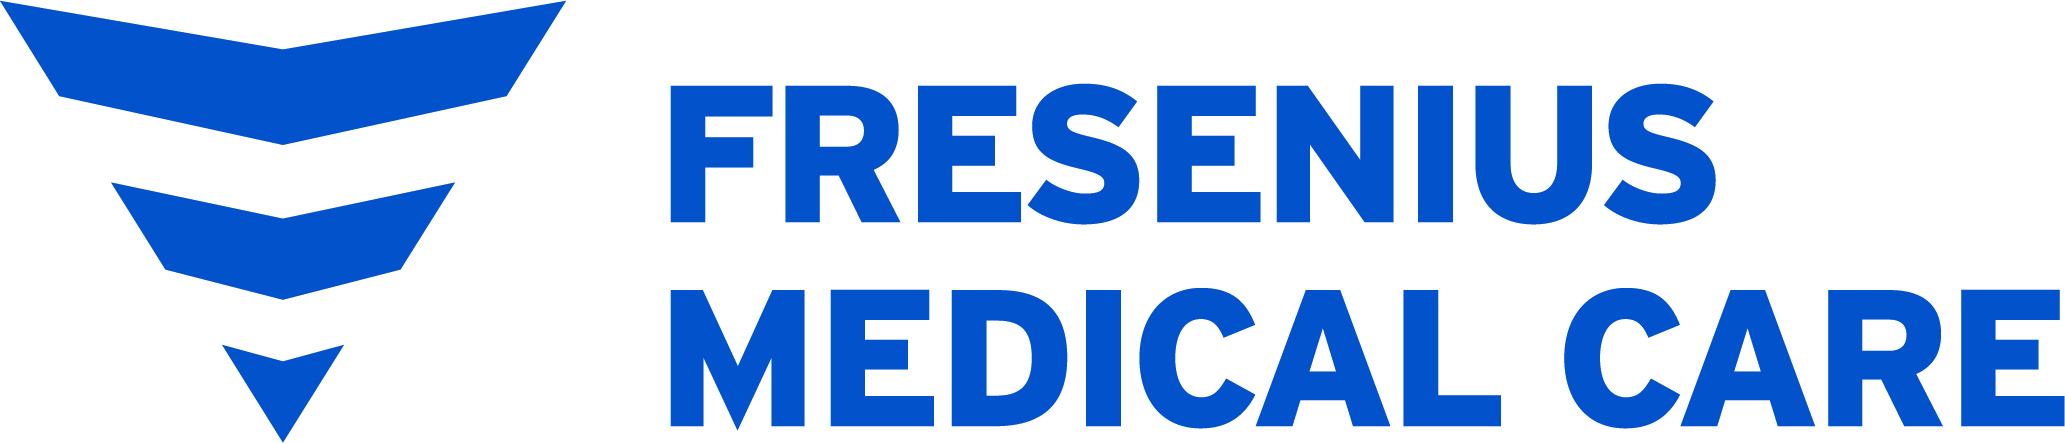 The speaker works for Fresenius Medical Care